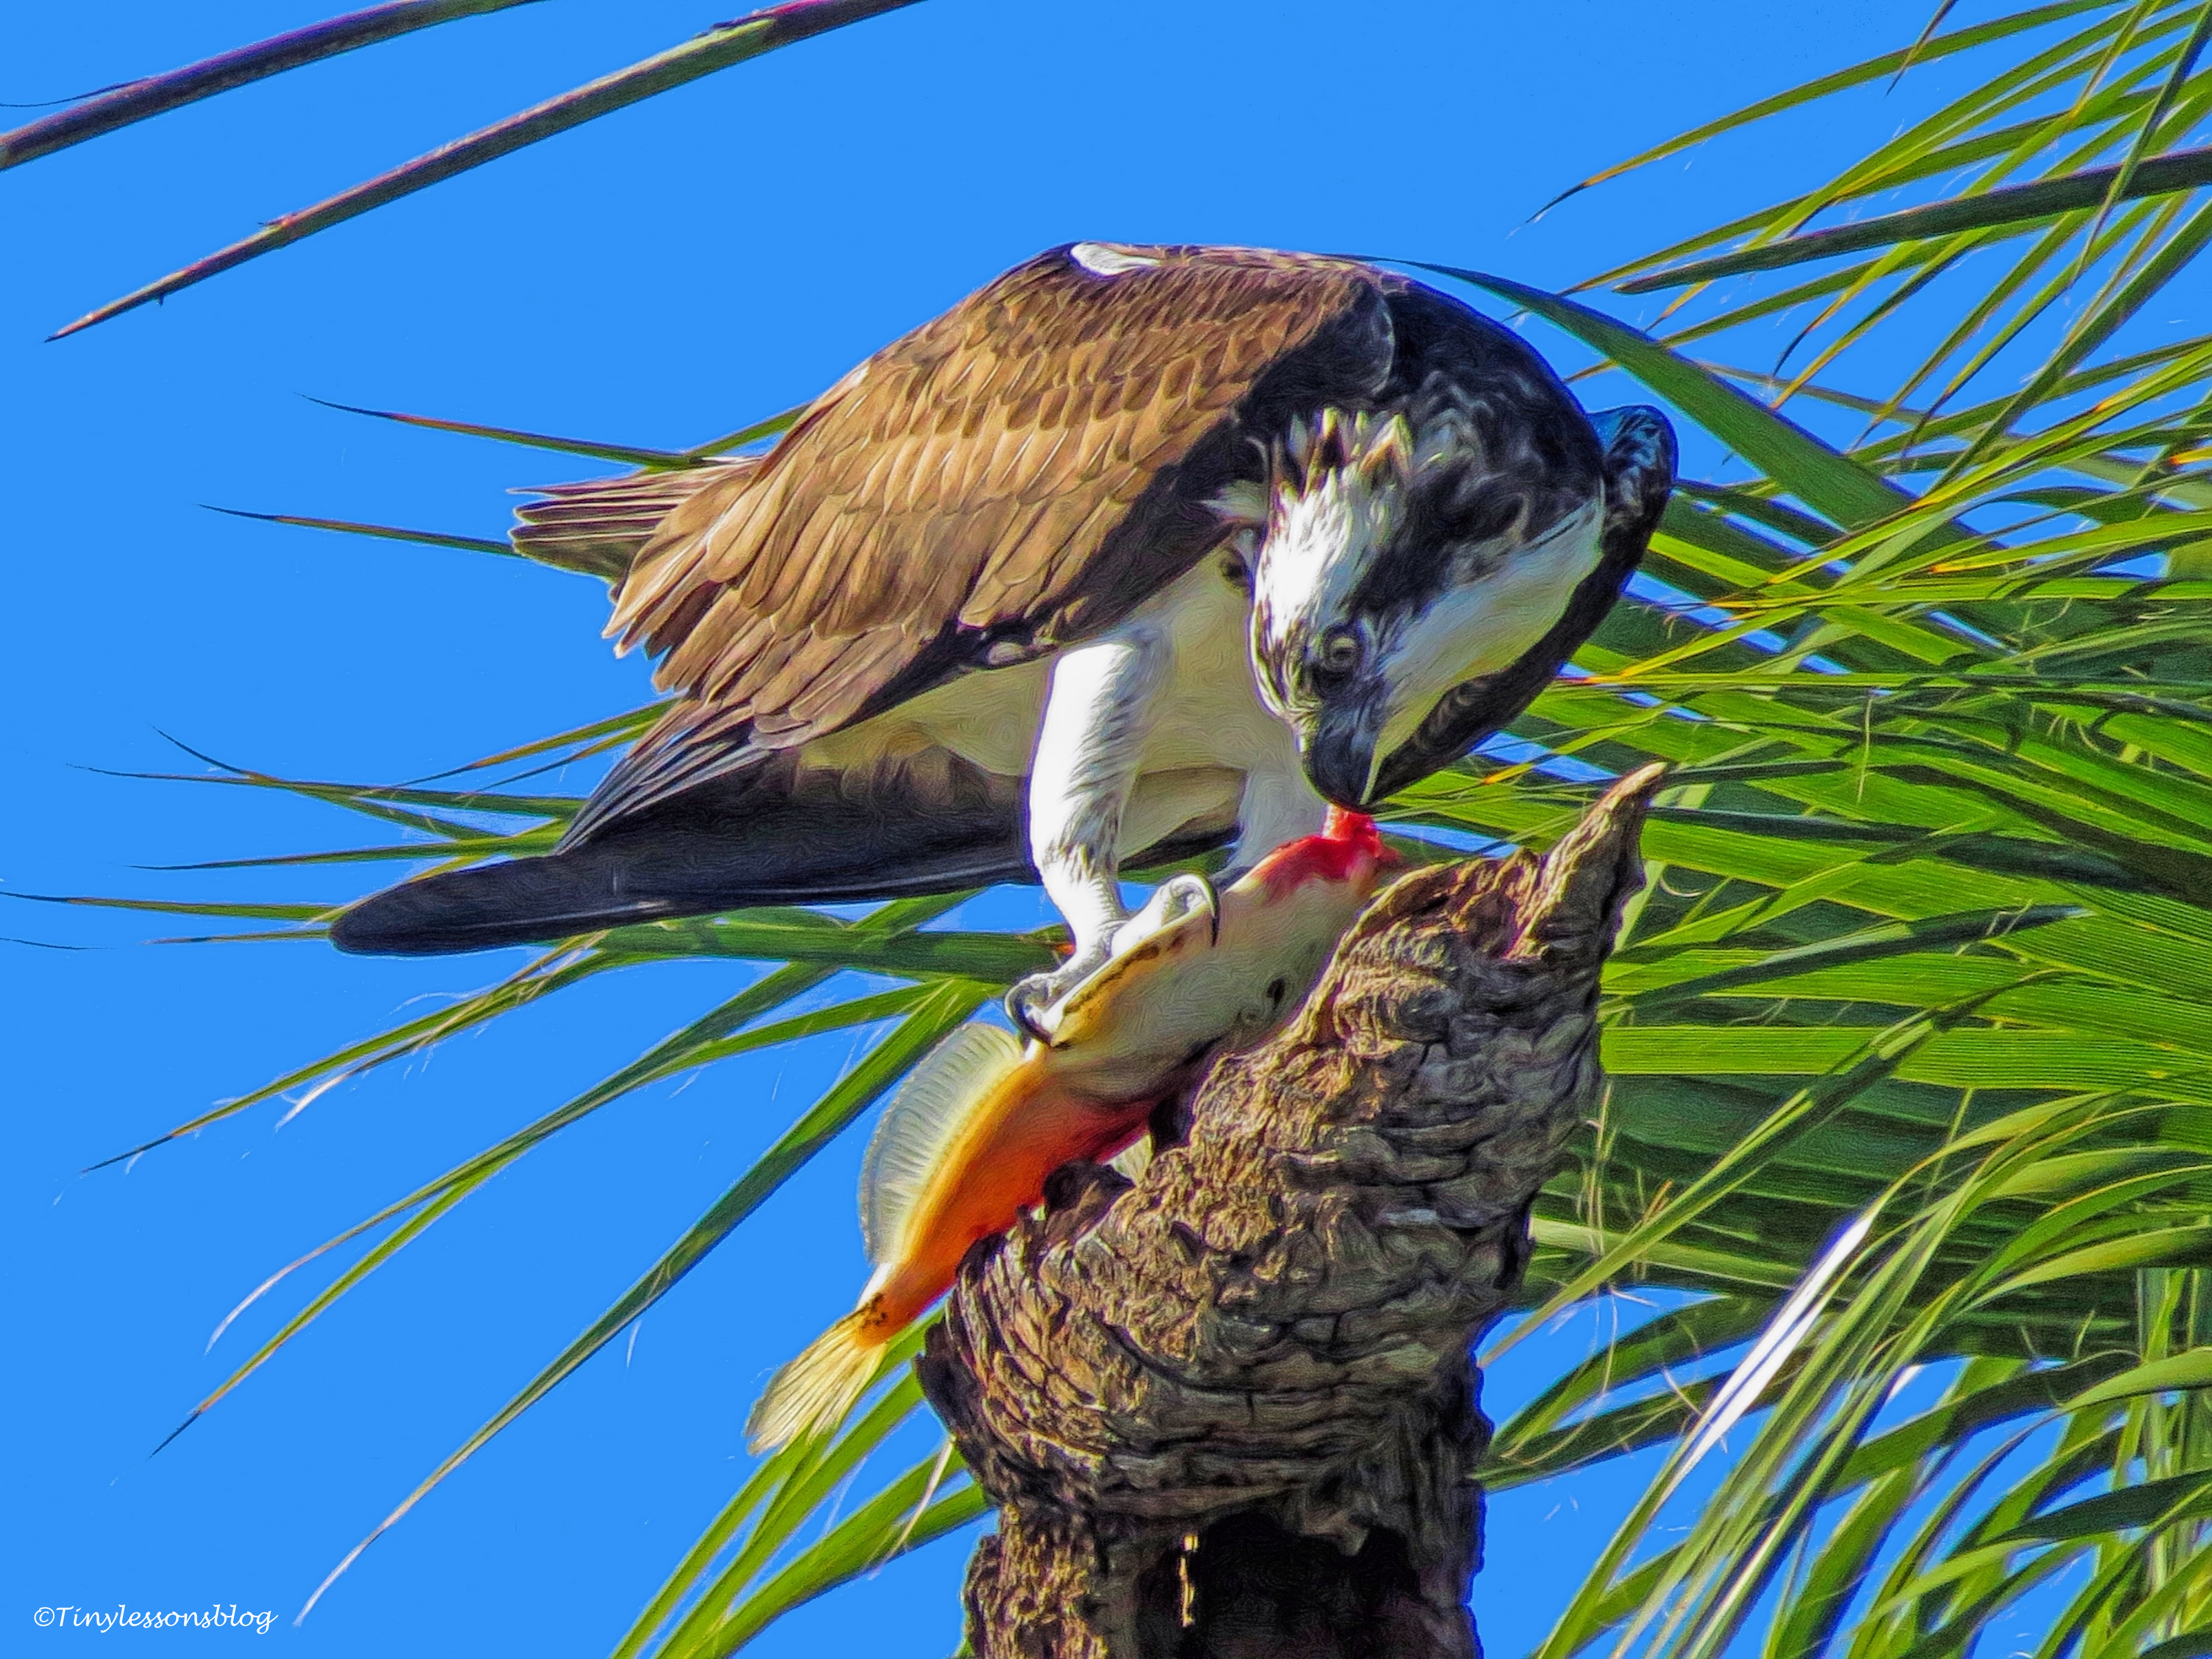 Male osprey eats fish Sand Key, Clearwater, Florida